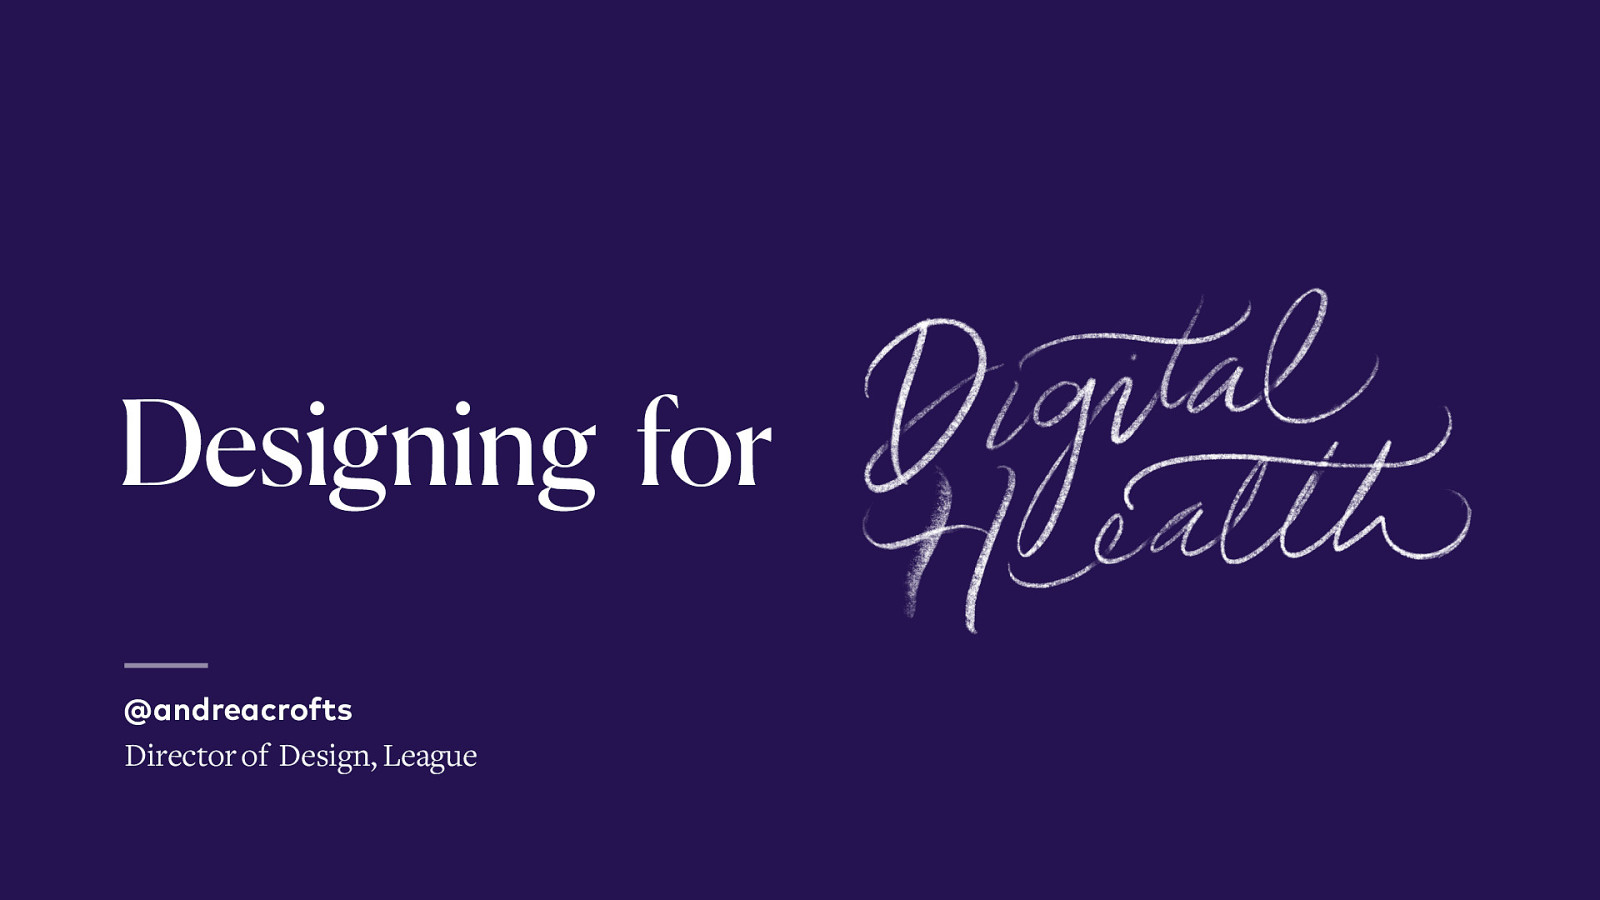 Designing for Digital Health by Andréa Crofts